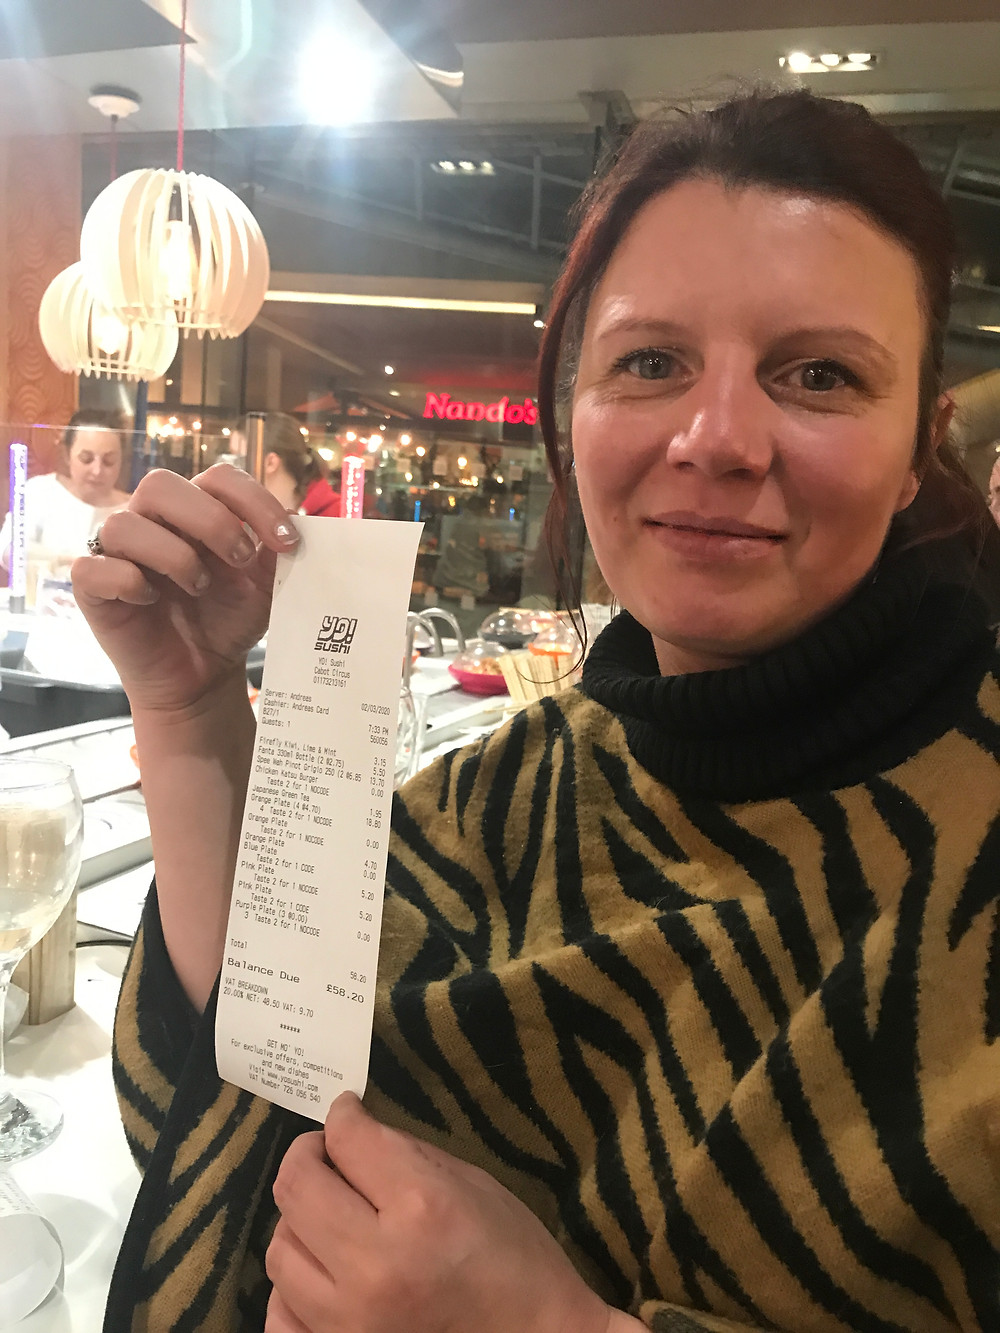 Me with my Yo! Sushi receipt